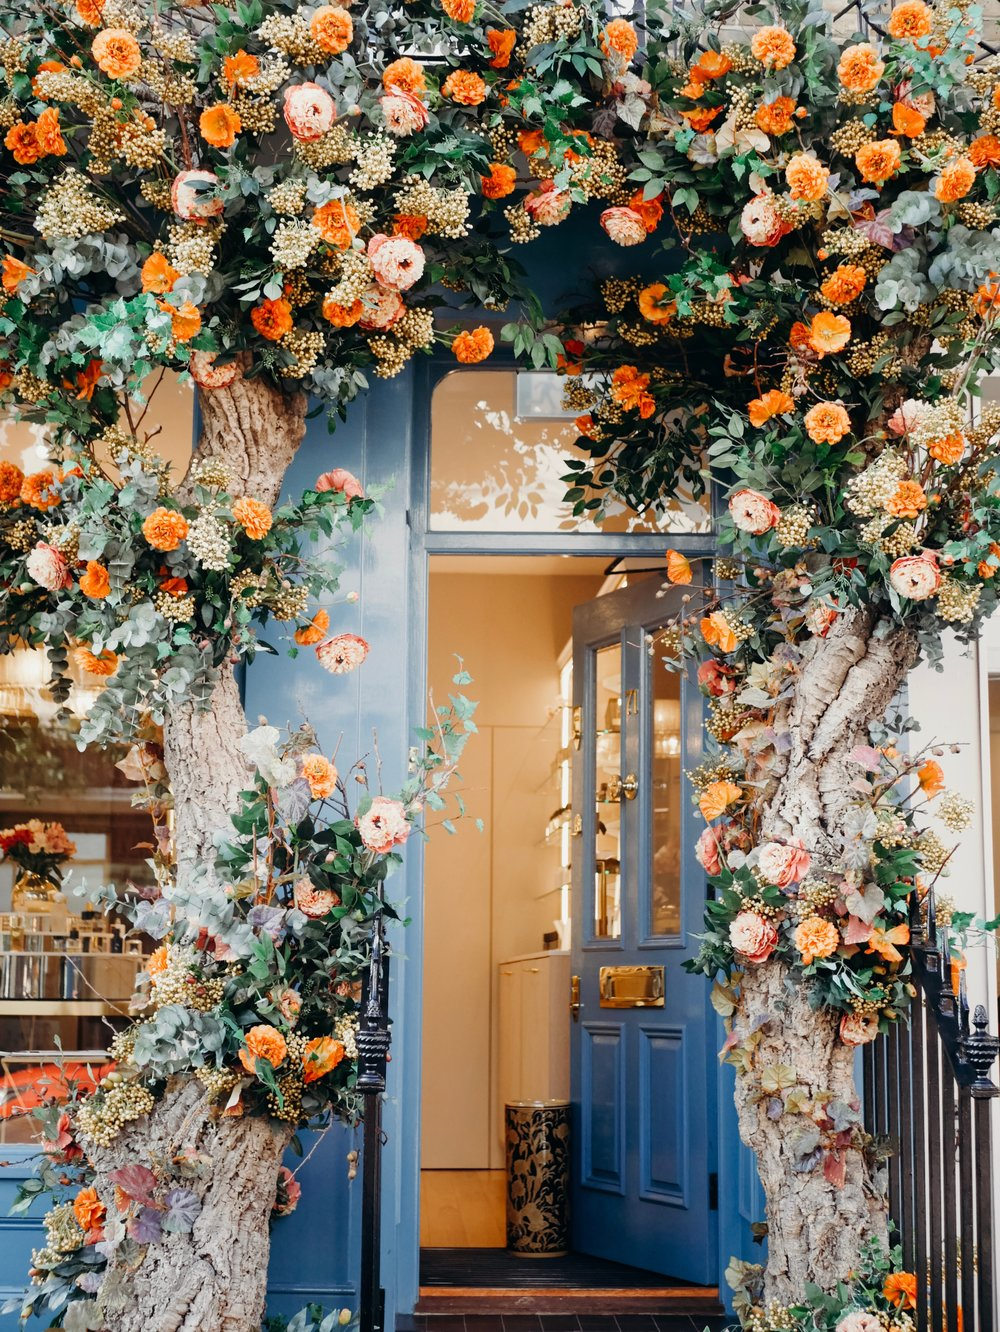 Fall Floral Displays in London